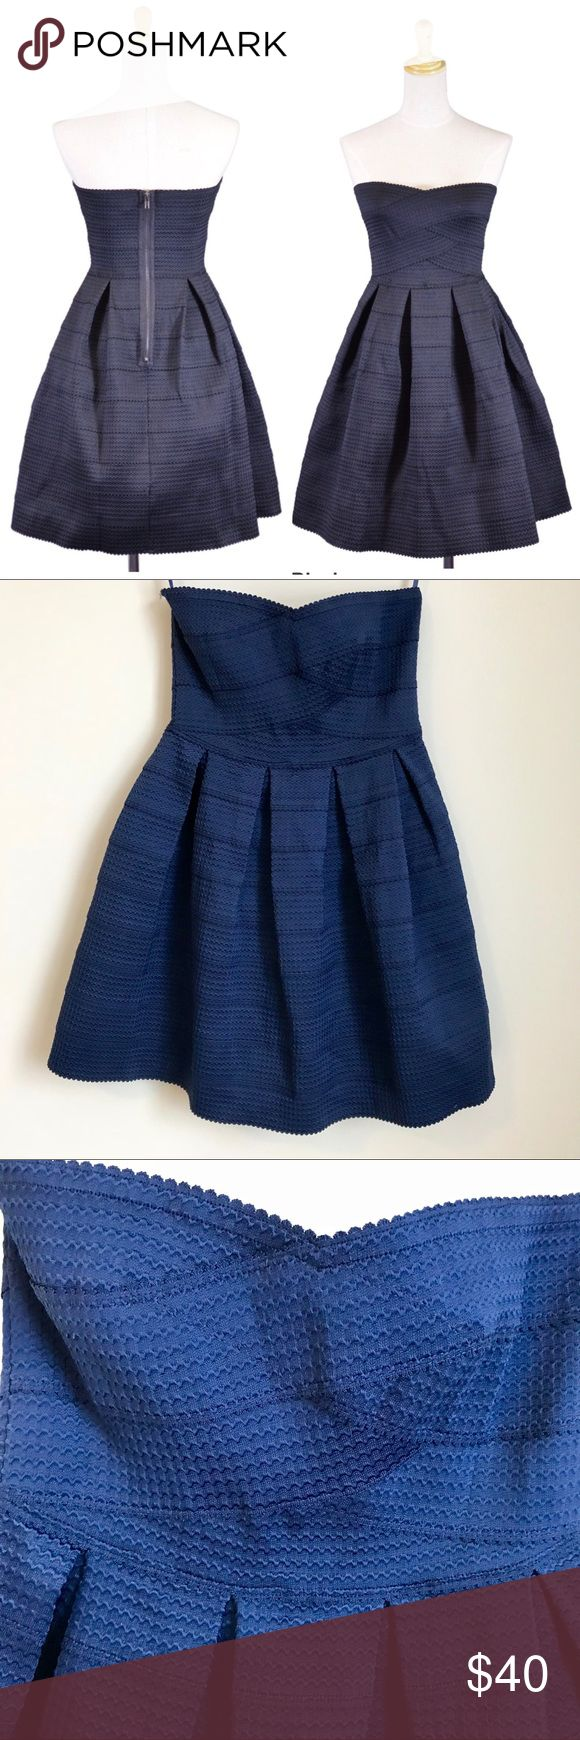 """NEW! Honey Punch Women's Strapless Cocktail Dress Honey Punch Hot Mama fit and flare bandage dress in dark navy blue. Brand new with tags in perfect condition. Zips up back. Very supportive bandage material with some stretch for comfortable and flattering fit. Strapless sweetheart neckline and rubber coating to help dress stay up.  Size medium runs true to size. Perfect wedding guest dress.  Length 29""""  Waist 14"""" across Honey Punch Dresses Mini"""